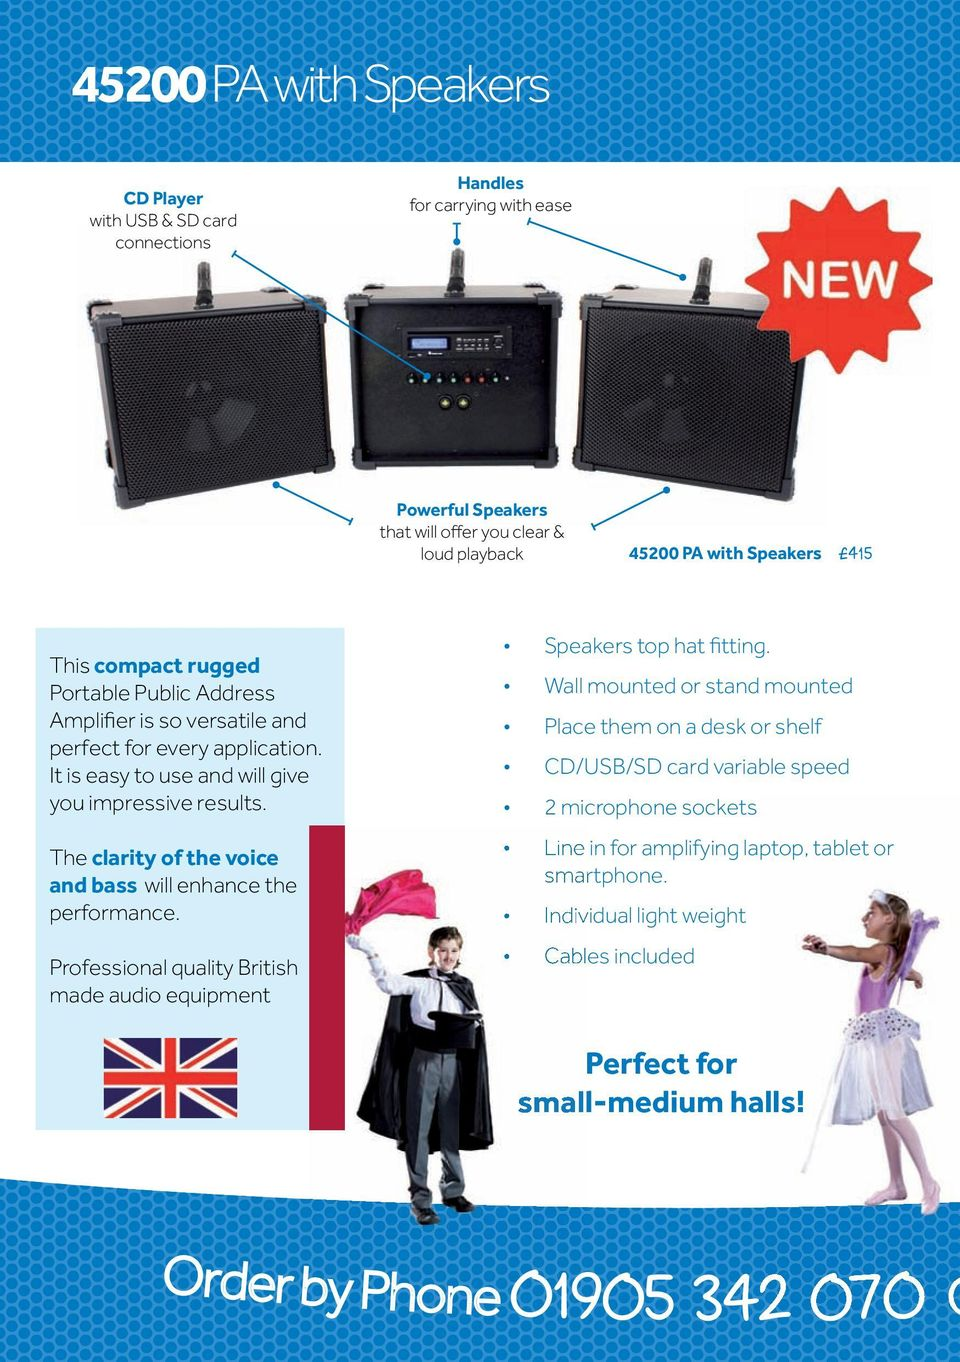 The clarity of the voice and bass will enhance the performance. Professional quality British made audio equipment Speakers top hat fitting.